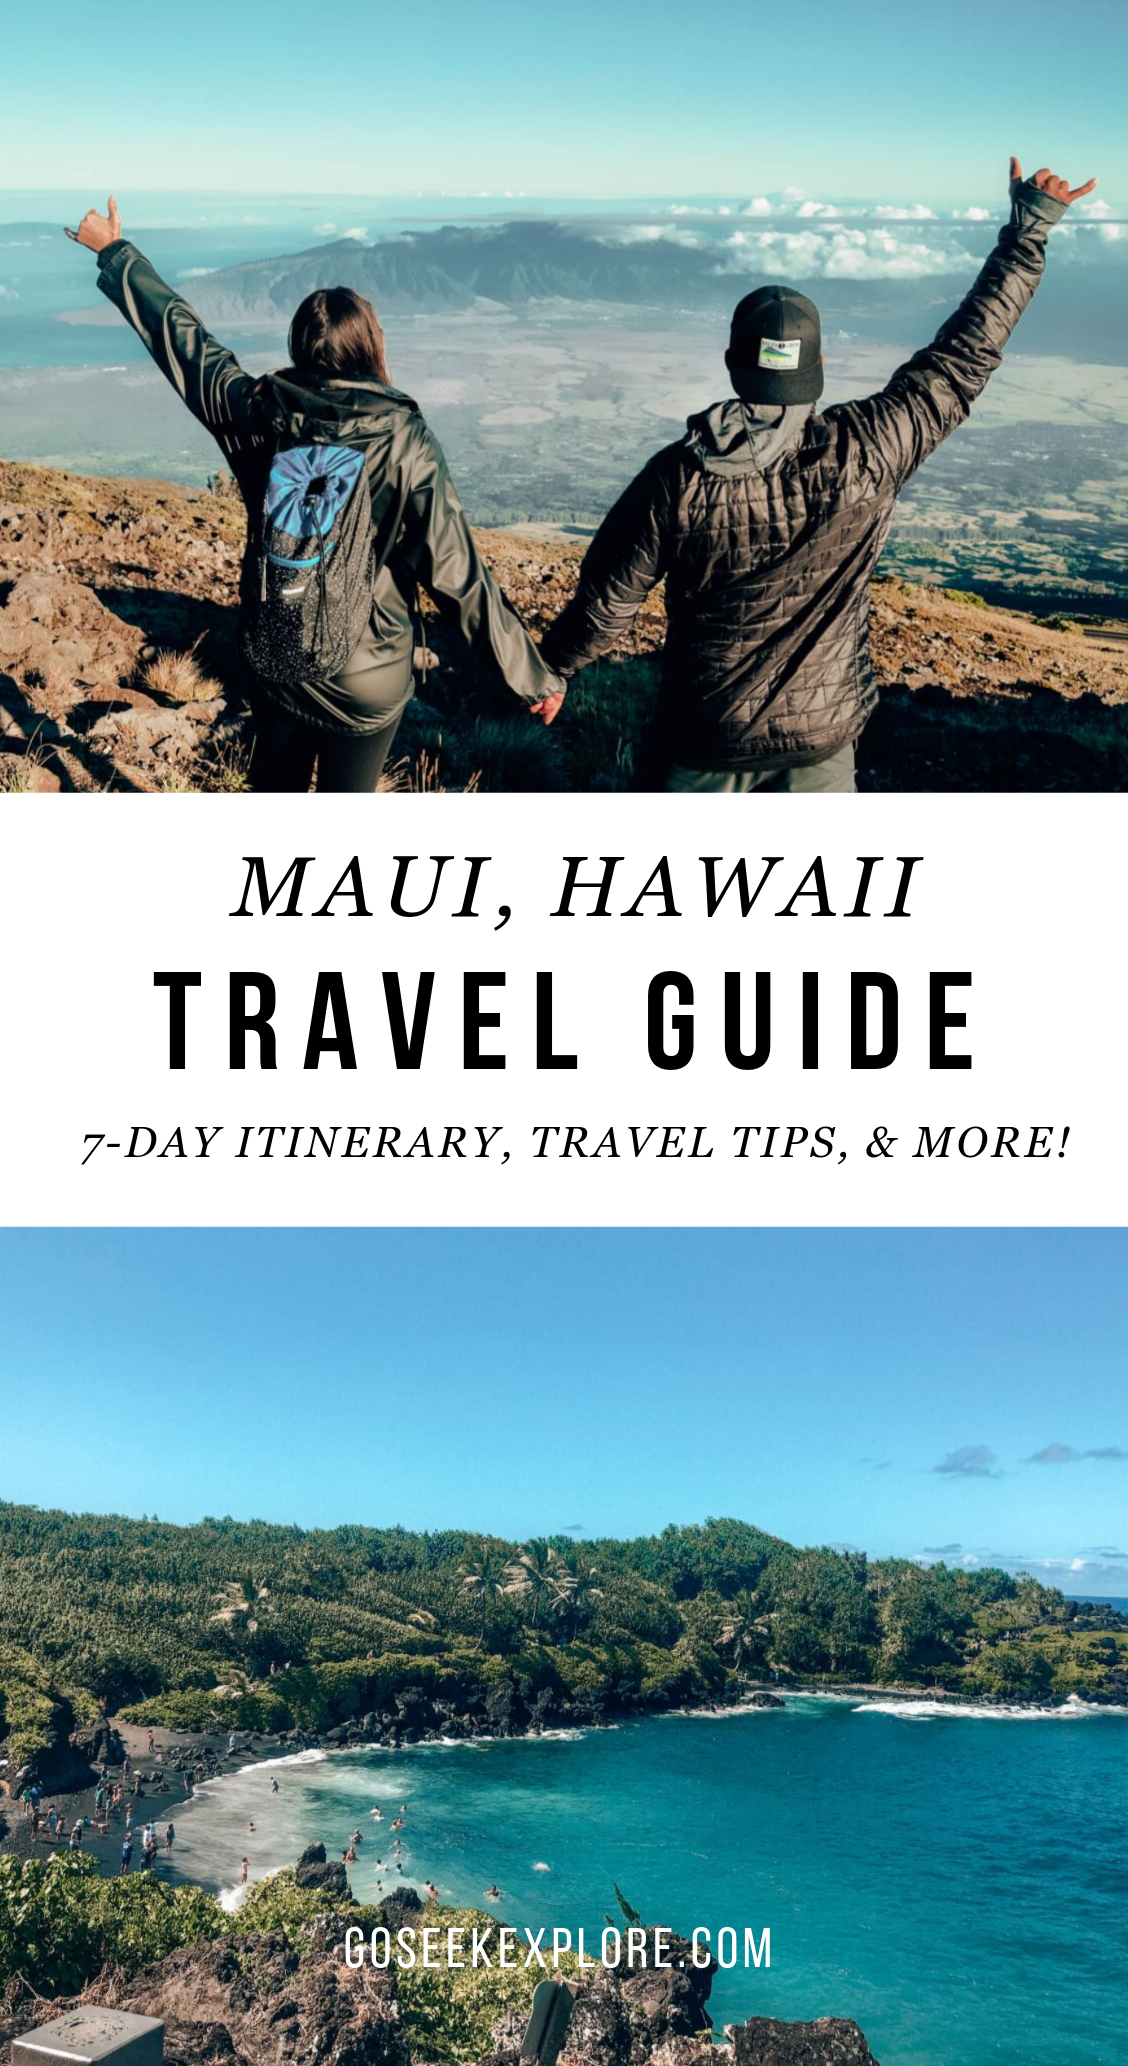 What to do in Maui, Hawaii for one week: full itinerary and travel tips! What to do in Maui, what to pack for Hawaii, Road to Hana, where to eat, and more! goseekexplore.com #hawaii #maui #mauitraveltips #hawaiihoneymoon #honeymoon #hawaiitravel